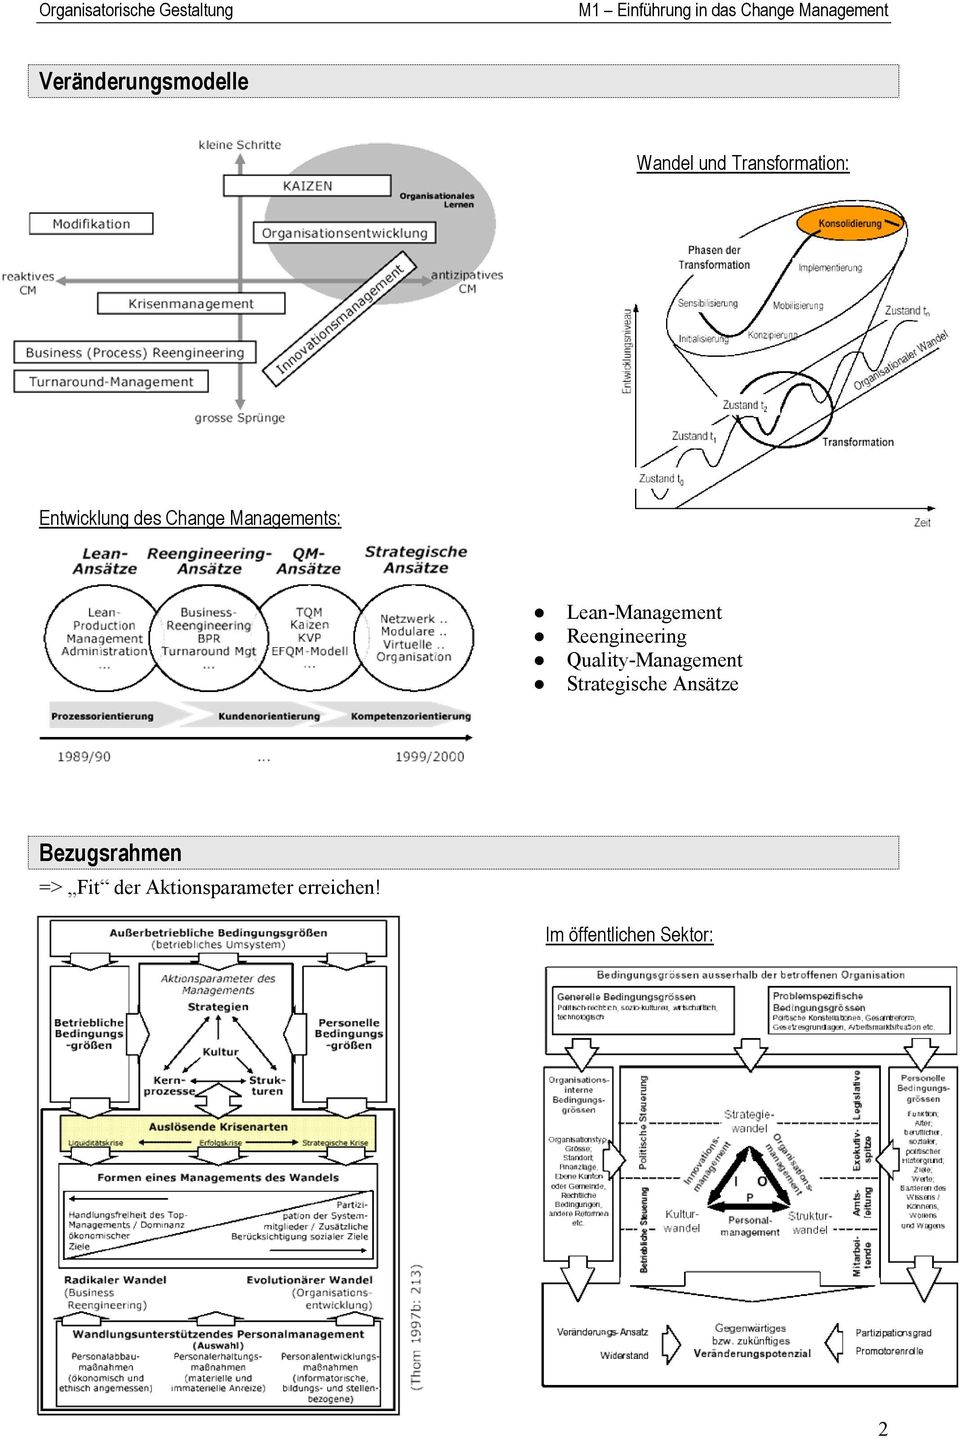 Lean-Management Reengineering Quality-Management Strategische